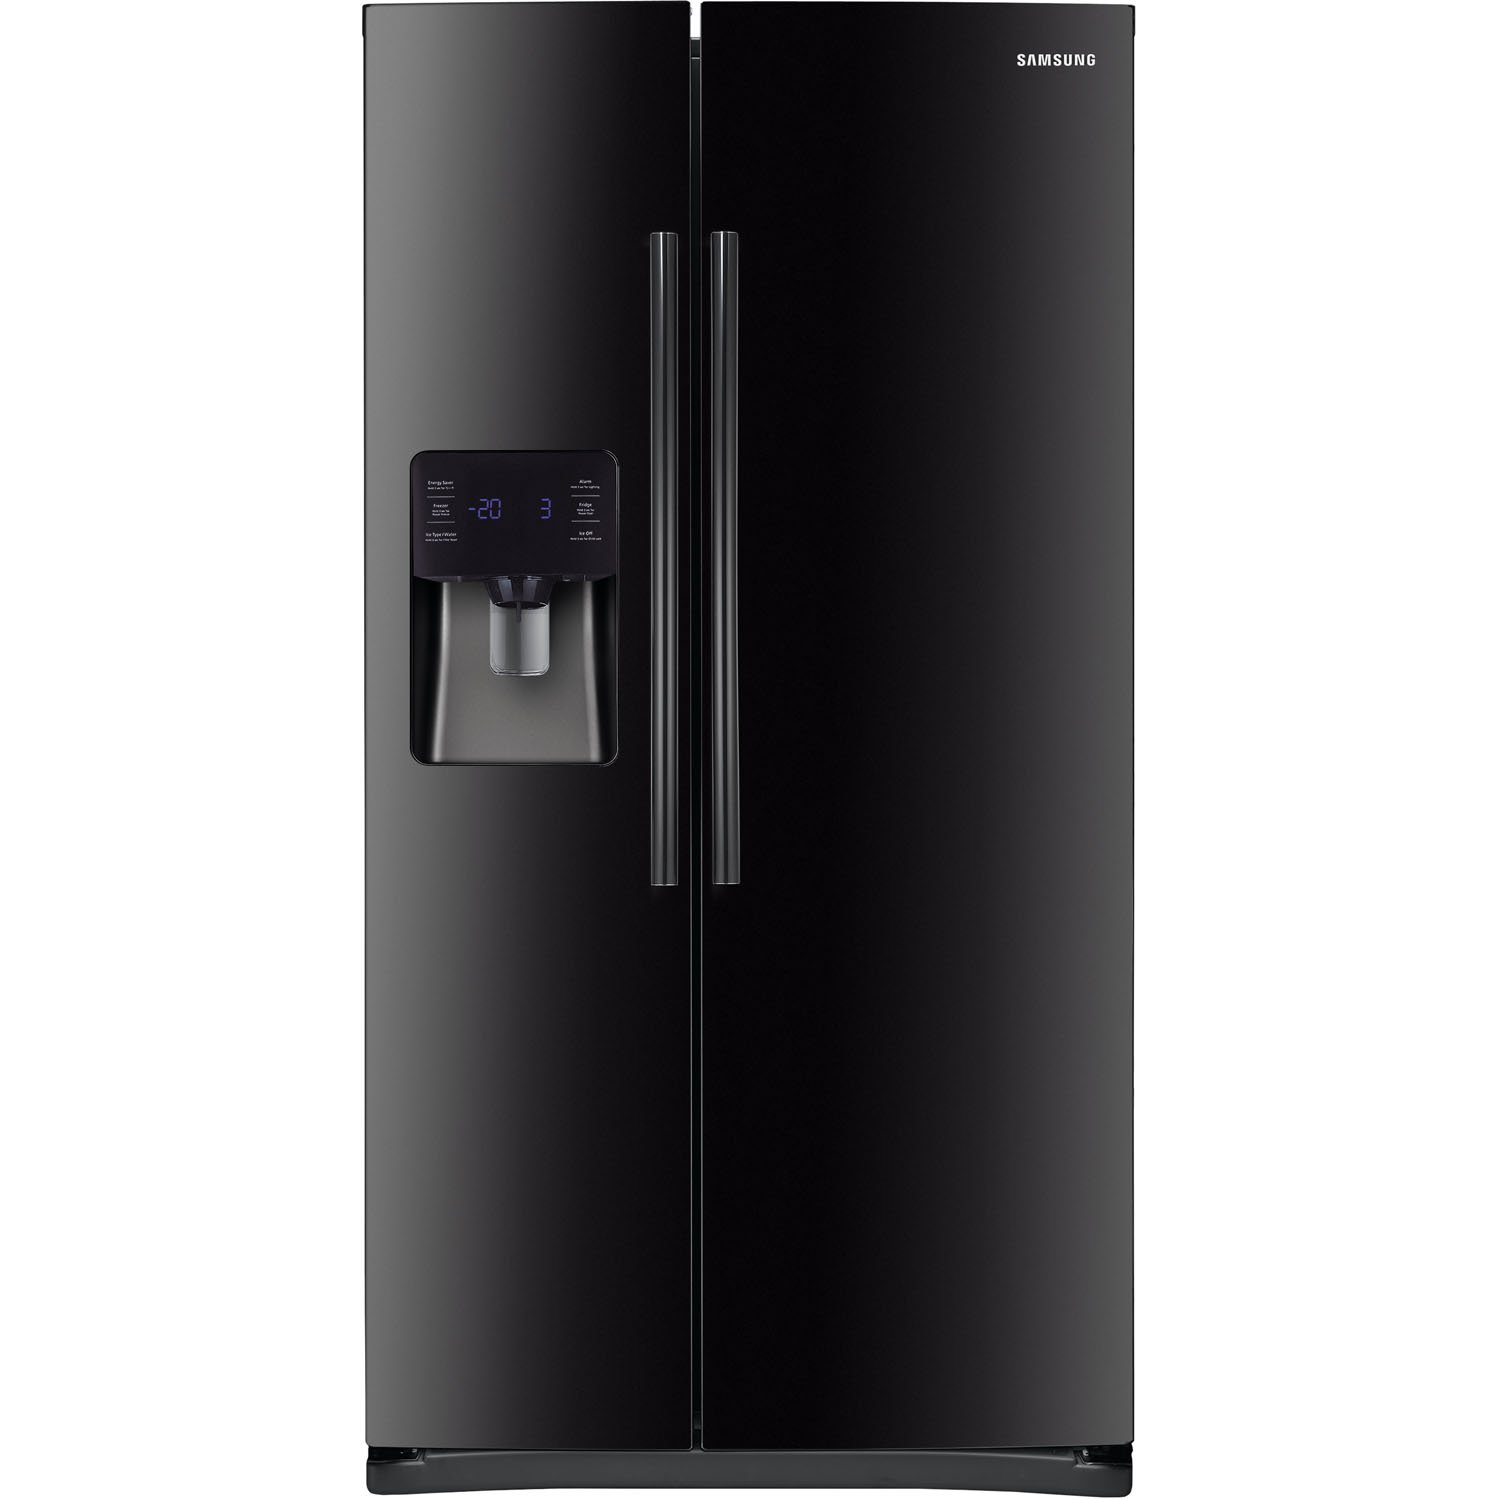 Samsung RS25H5111BC Energy Star 24.5 Cu. Ft. Side-by-Side Refrigerator/Freezer with External Water/Ice Dispenser and In-Door Ice Maker, Black